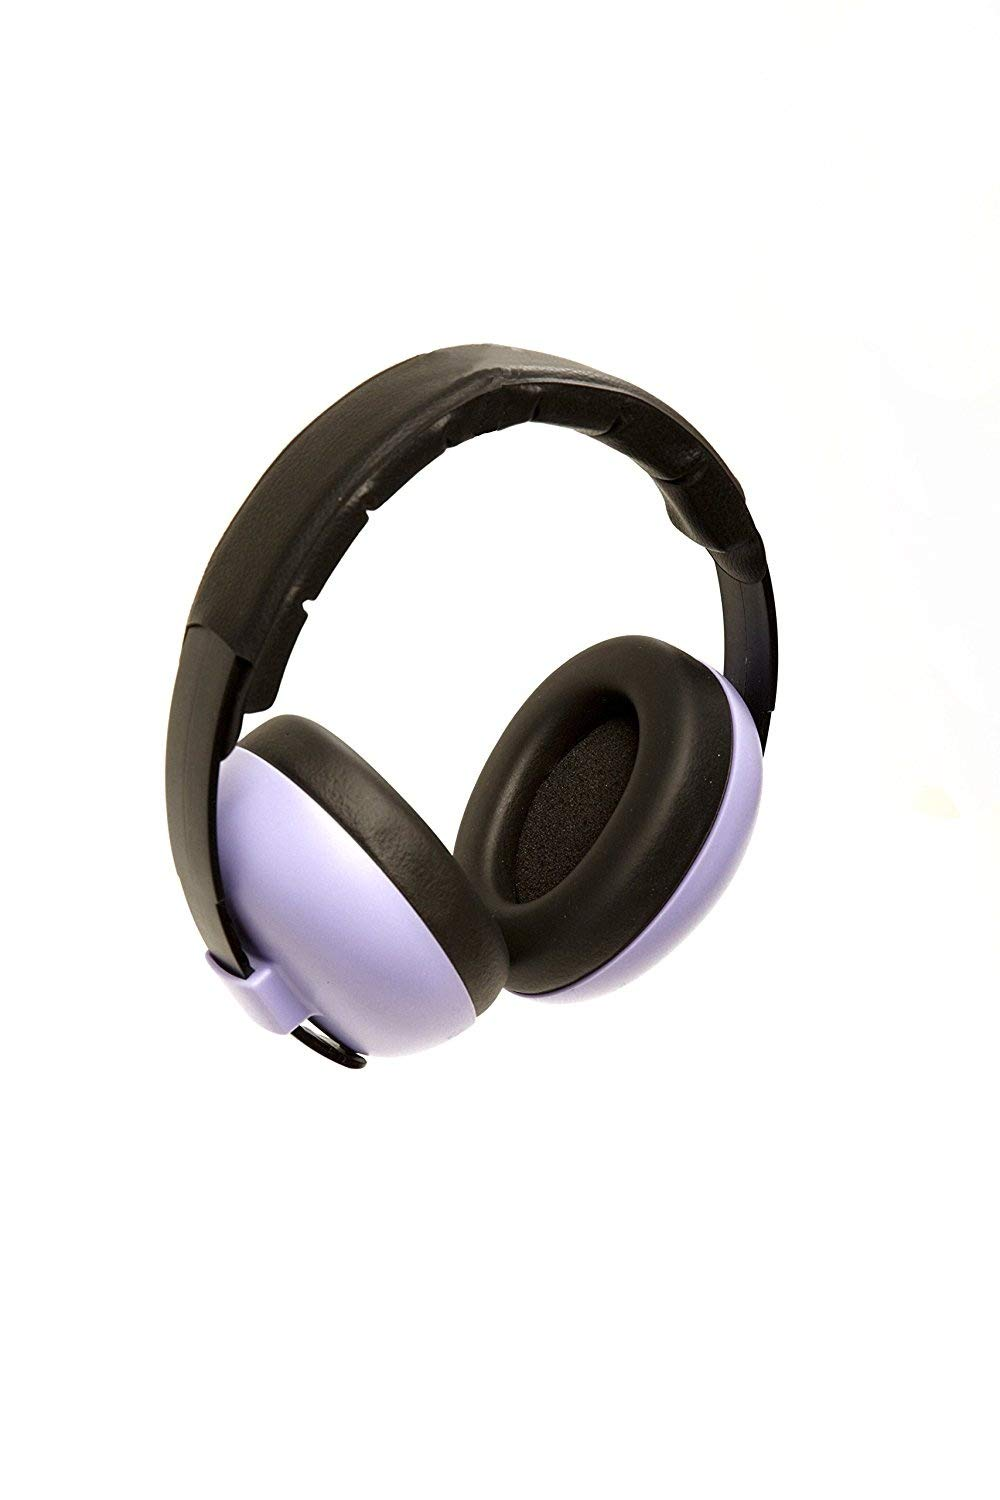 Banz Baby Ear Defenders Sticks and stones